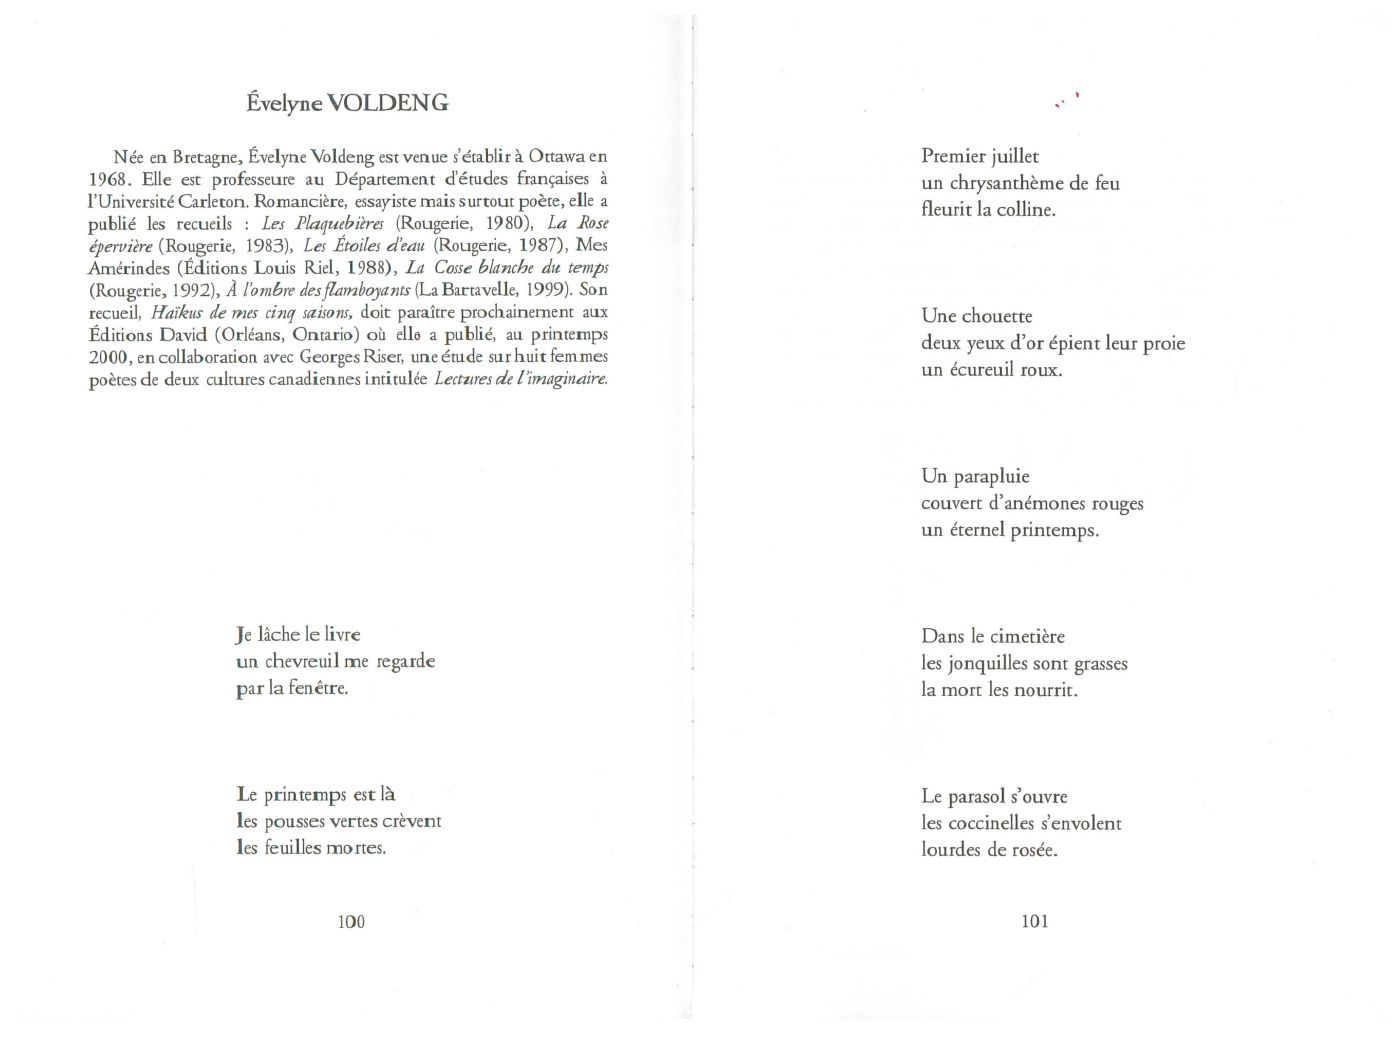 Printed document, in French. The biography of the poet, followed by a series of seven three-line haïku poems